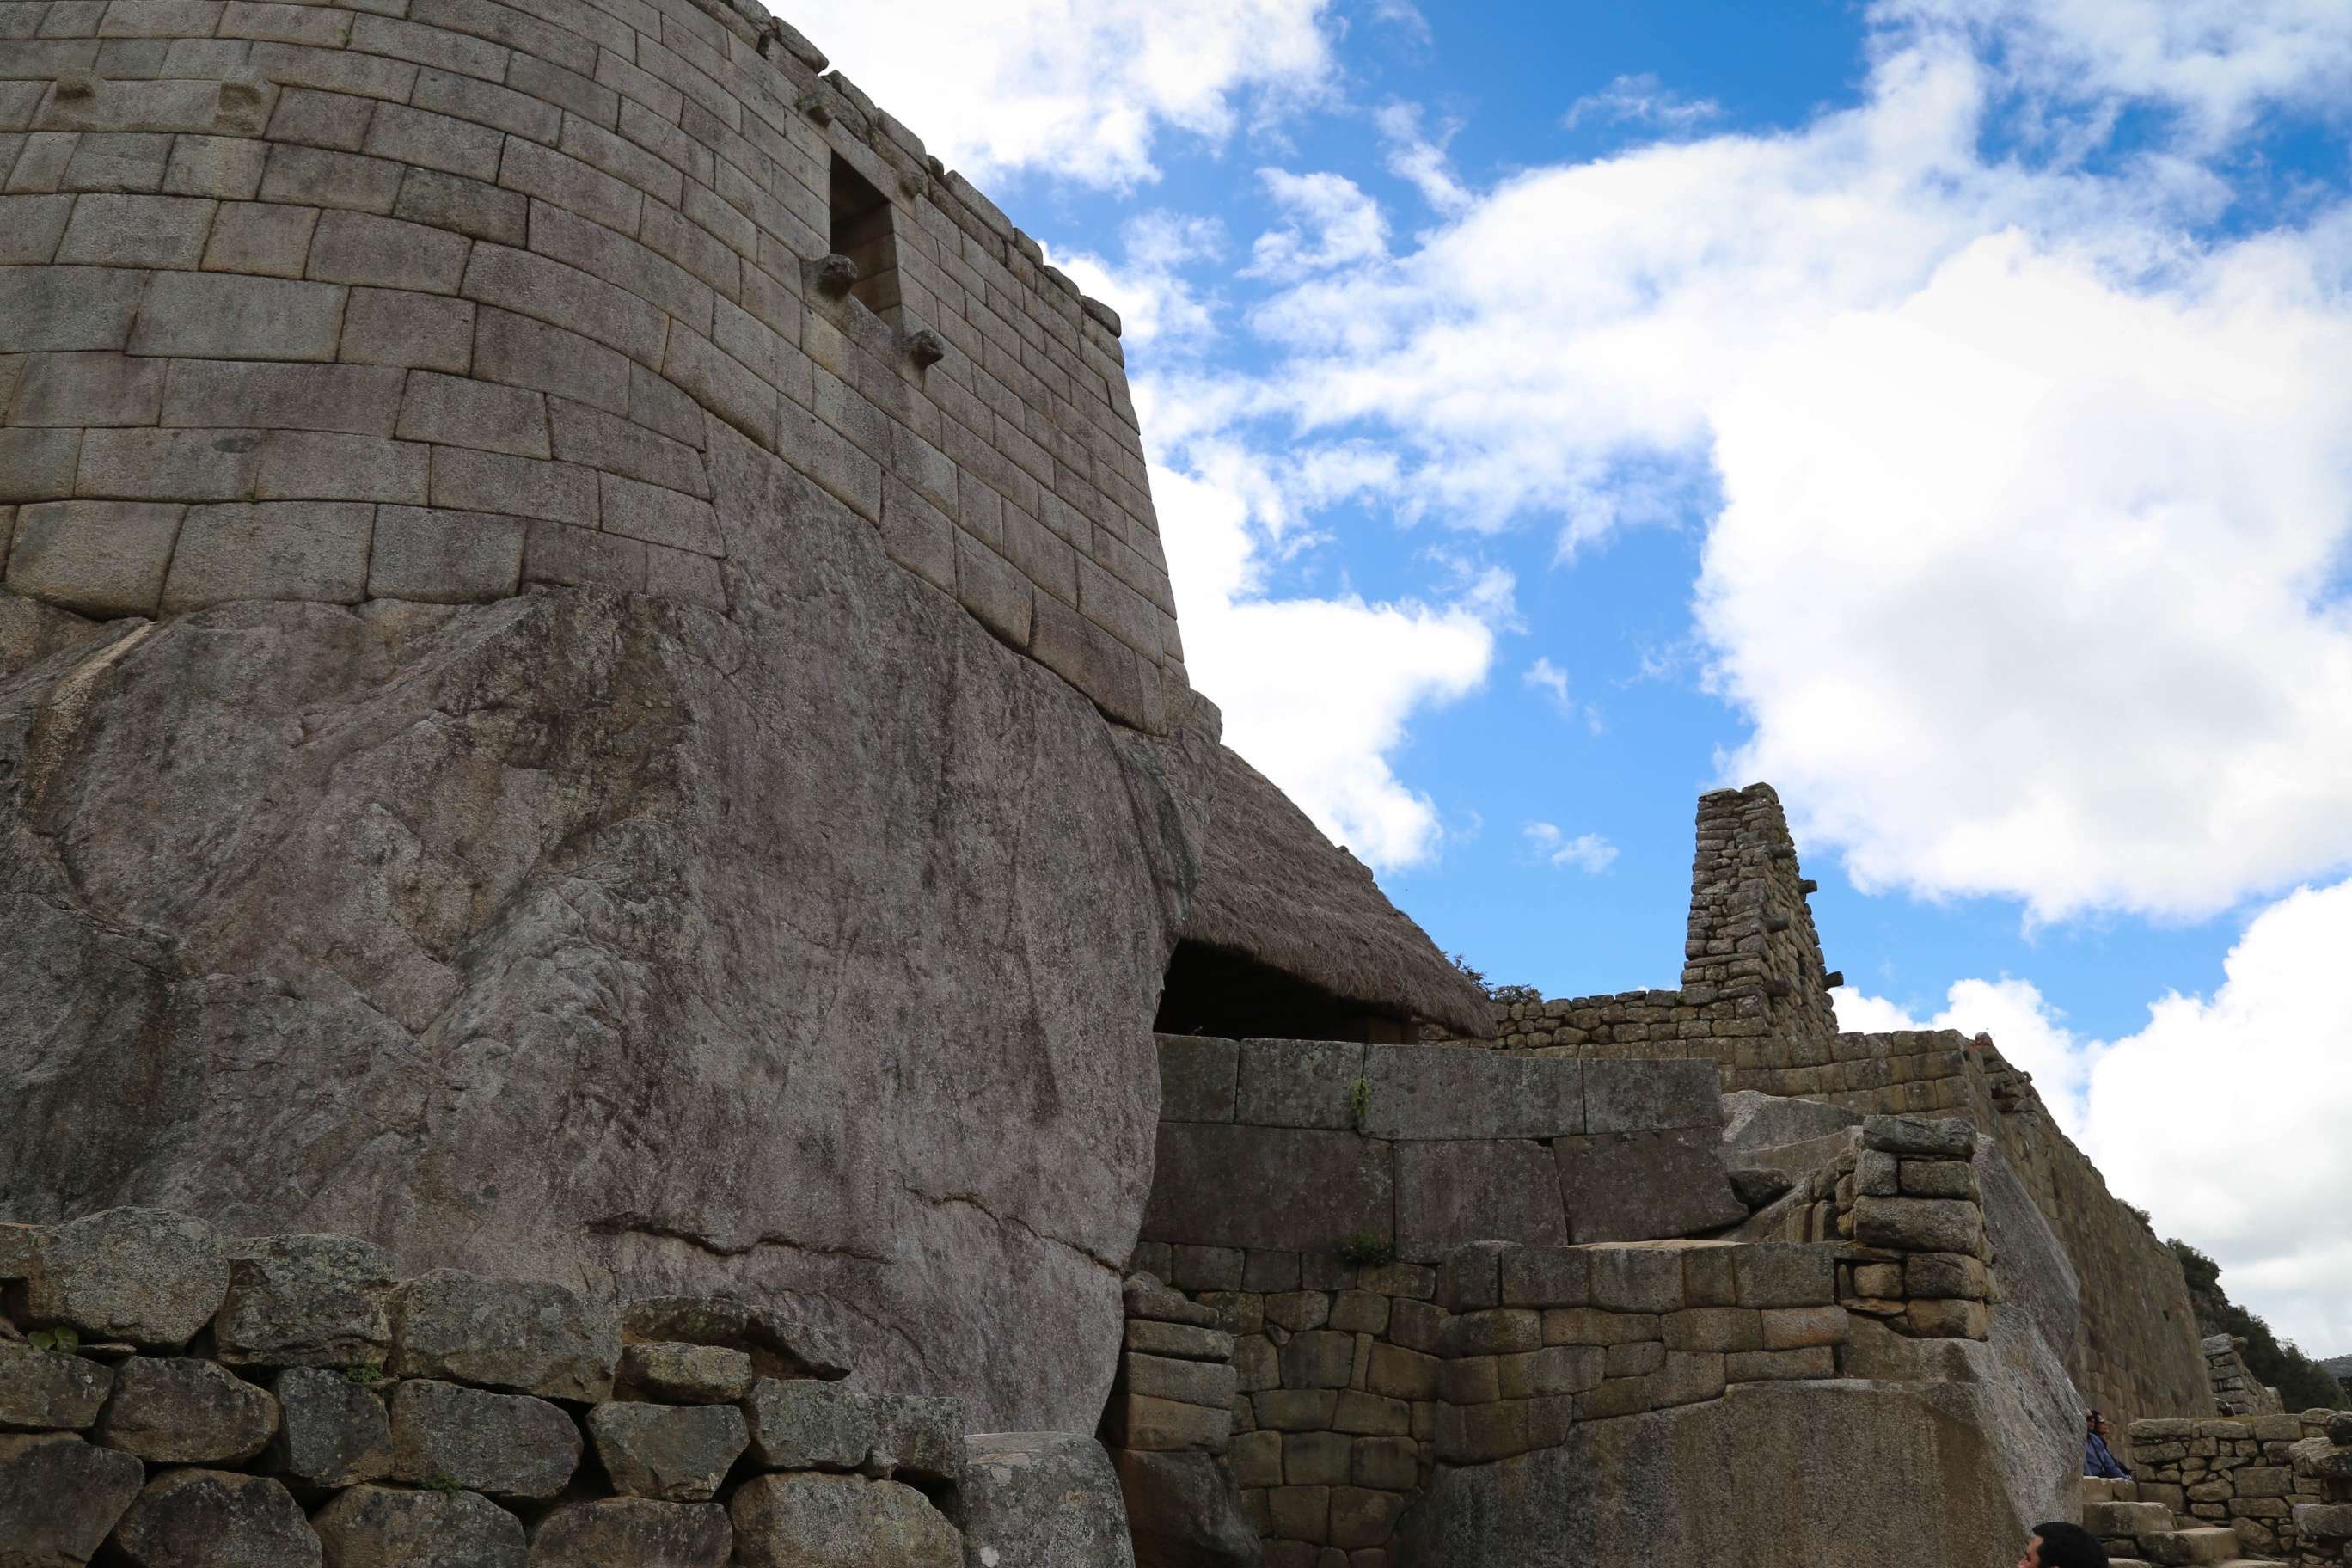 Using only hand labor, stones and ingenuity, the Incas created a masterpiece at Machu Picchu.